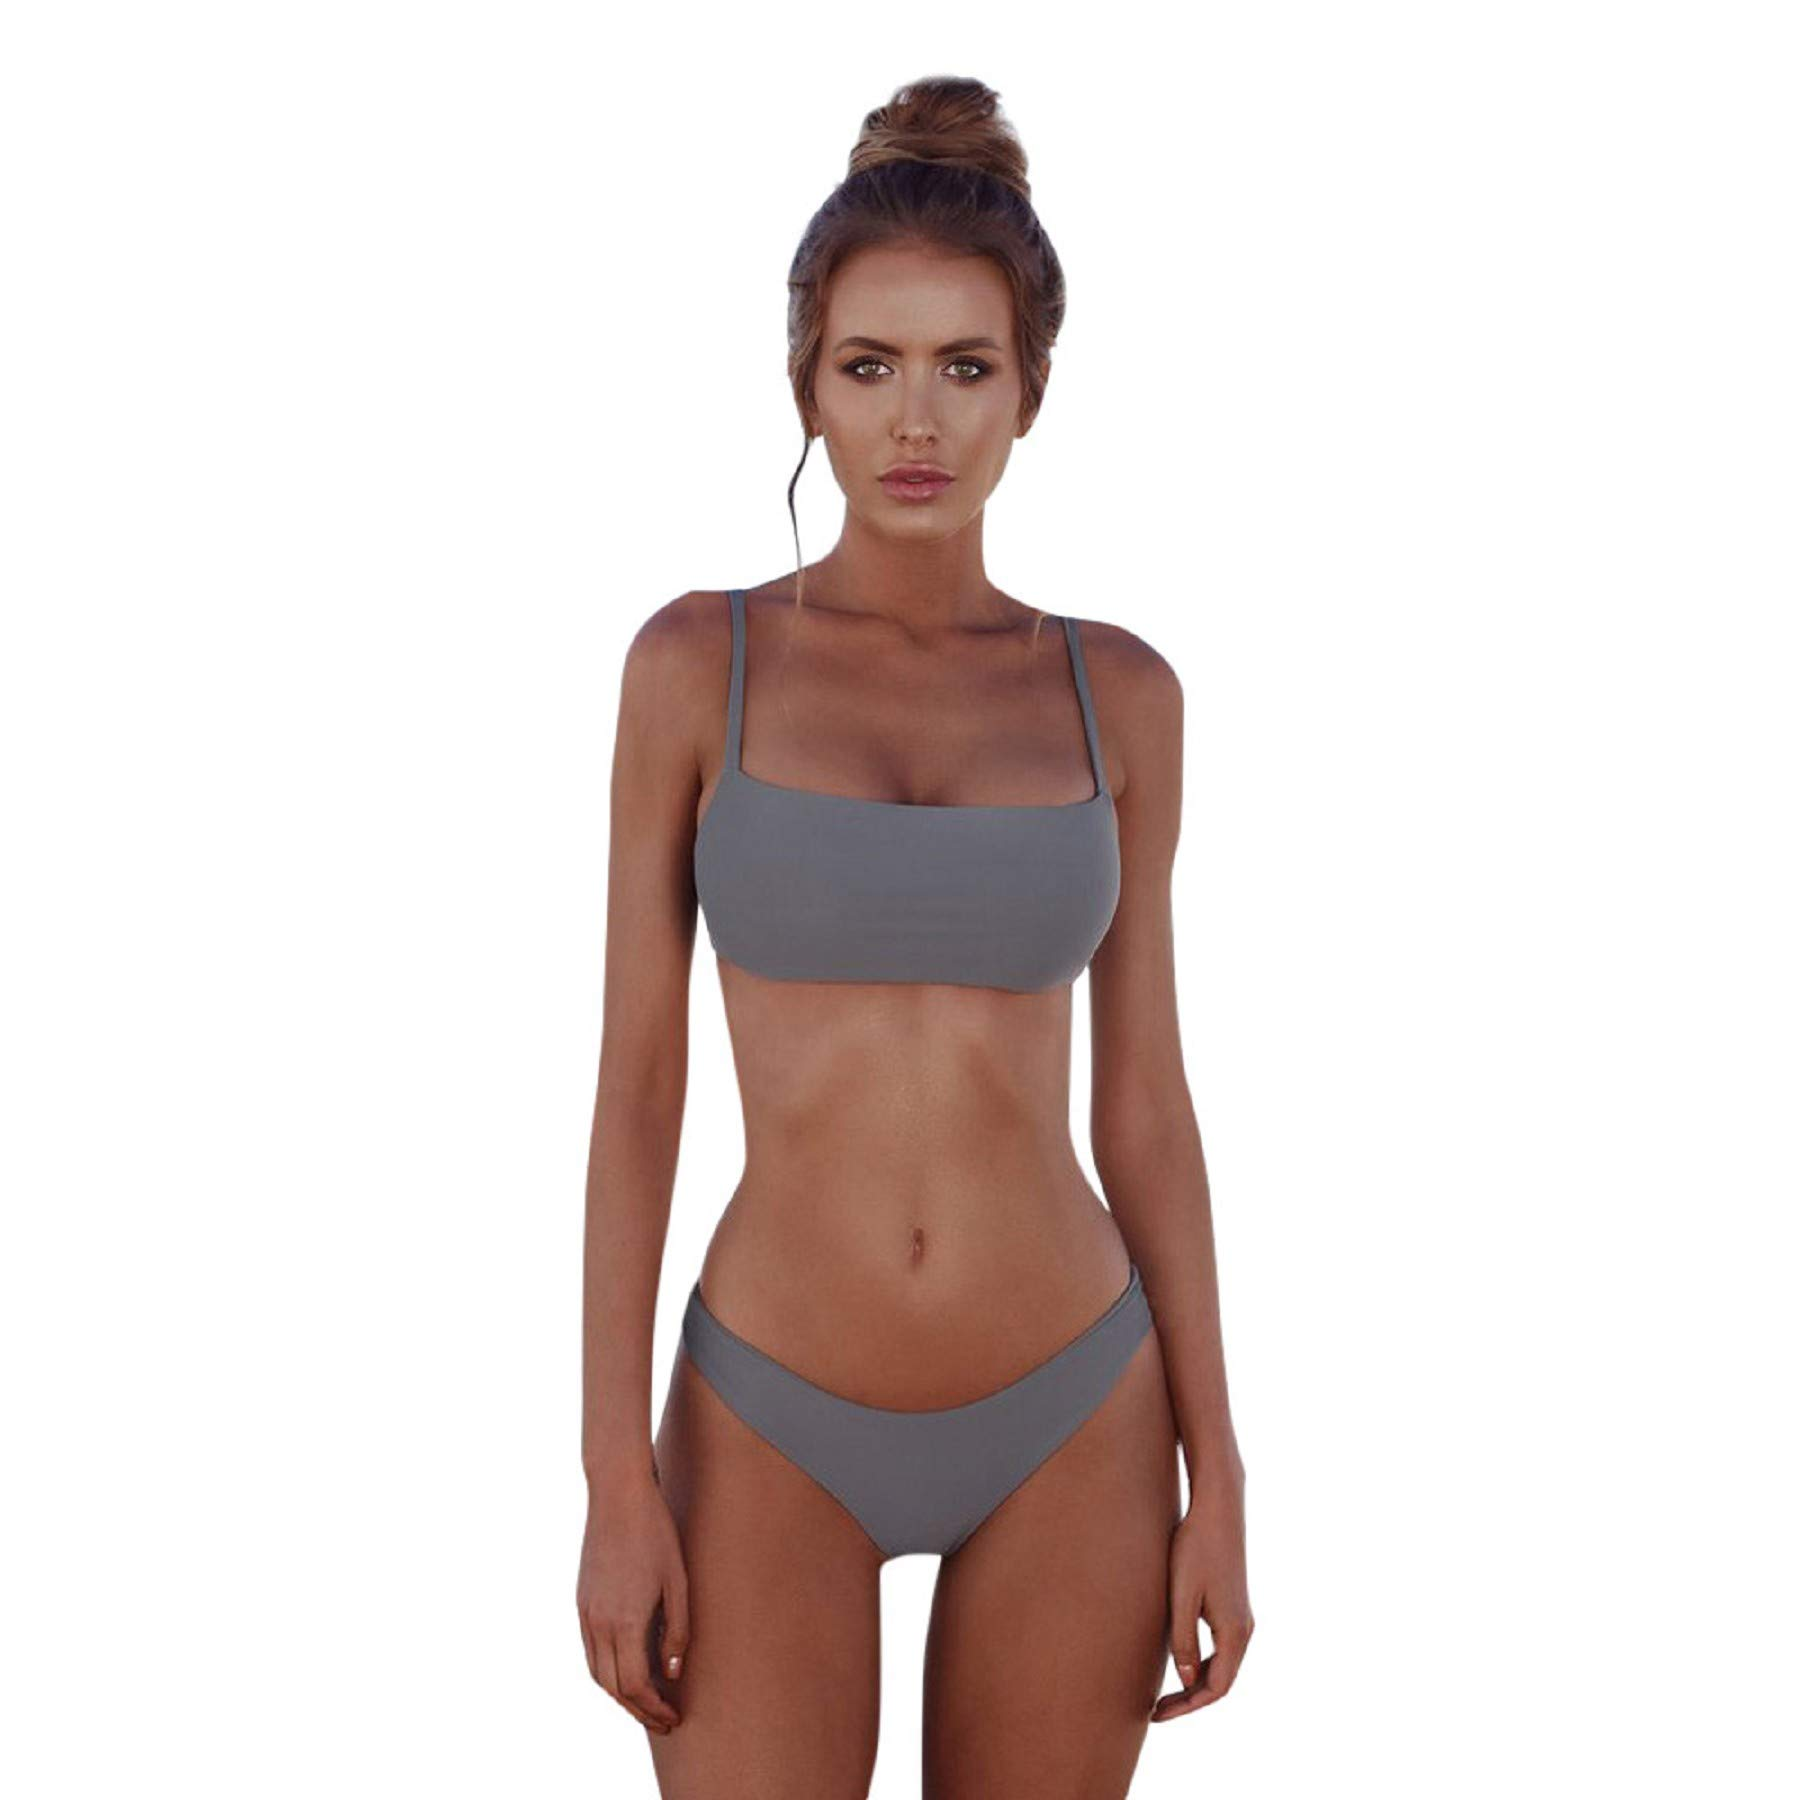 Womens Sexy Chic Solid Color Halter Bandeau Bikini Set Swimwear Bathing Suits Gray